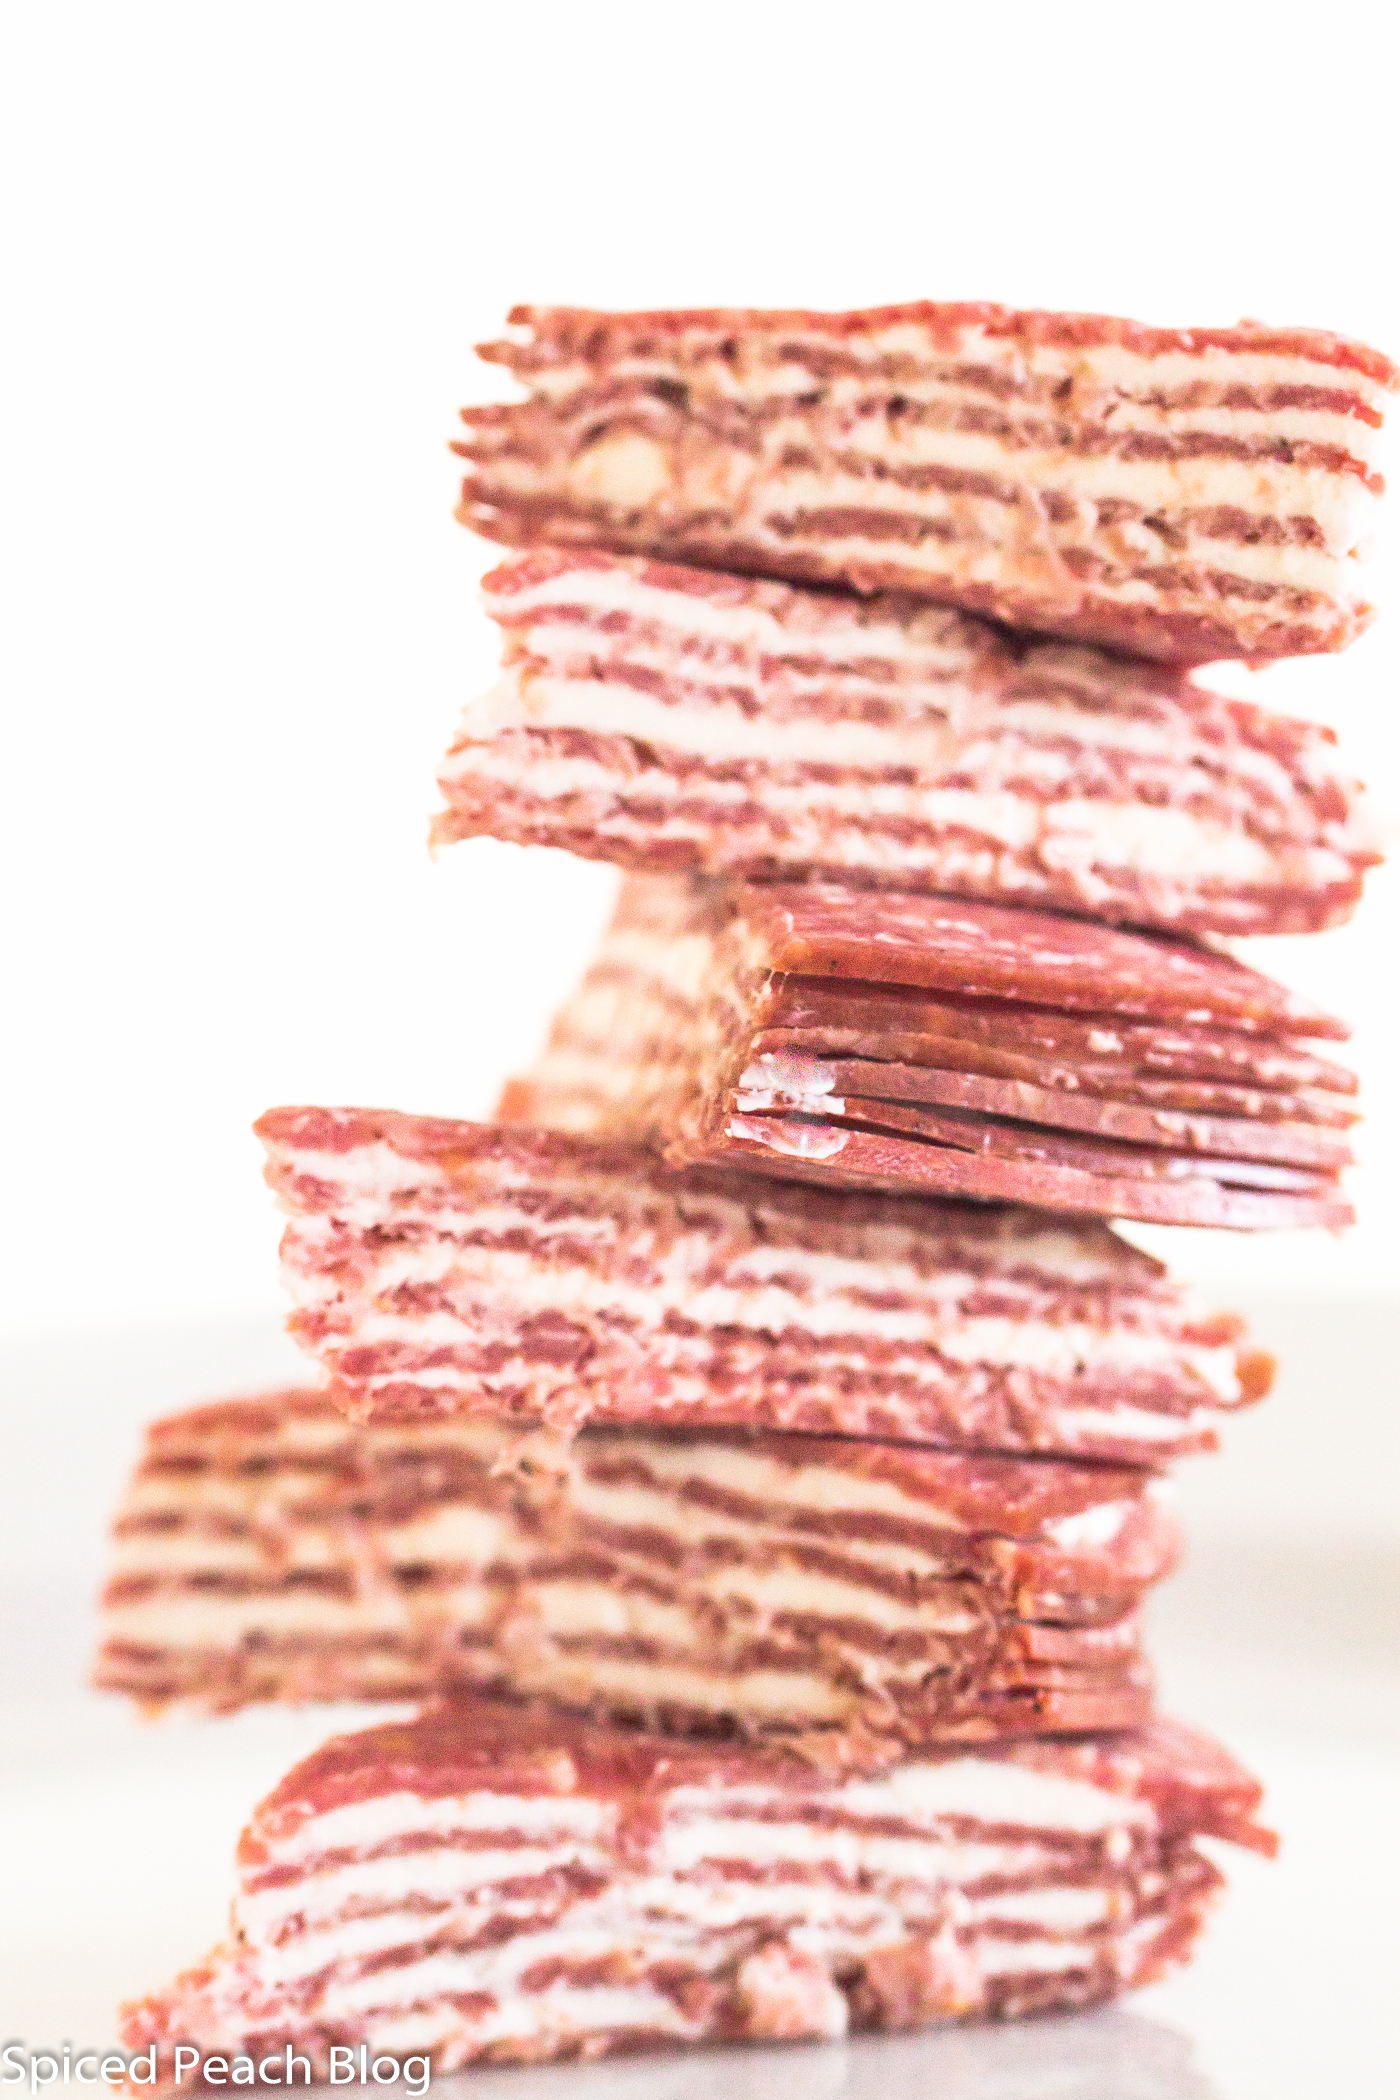 Seltzer's Lebanon Bologna and Philadelphia Cream Cheese Stacks